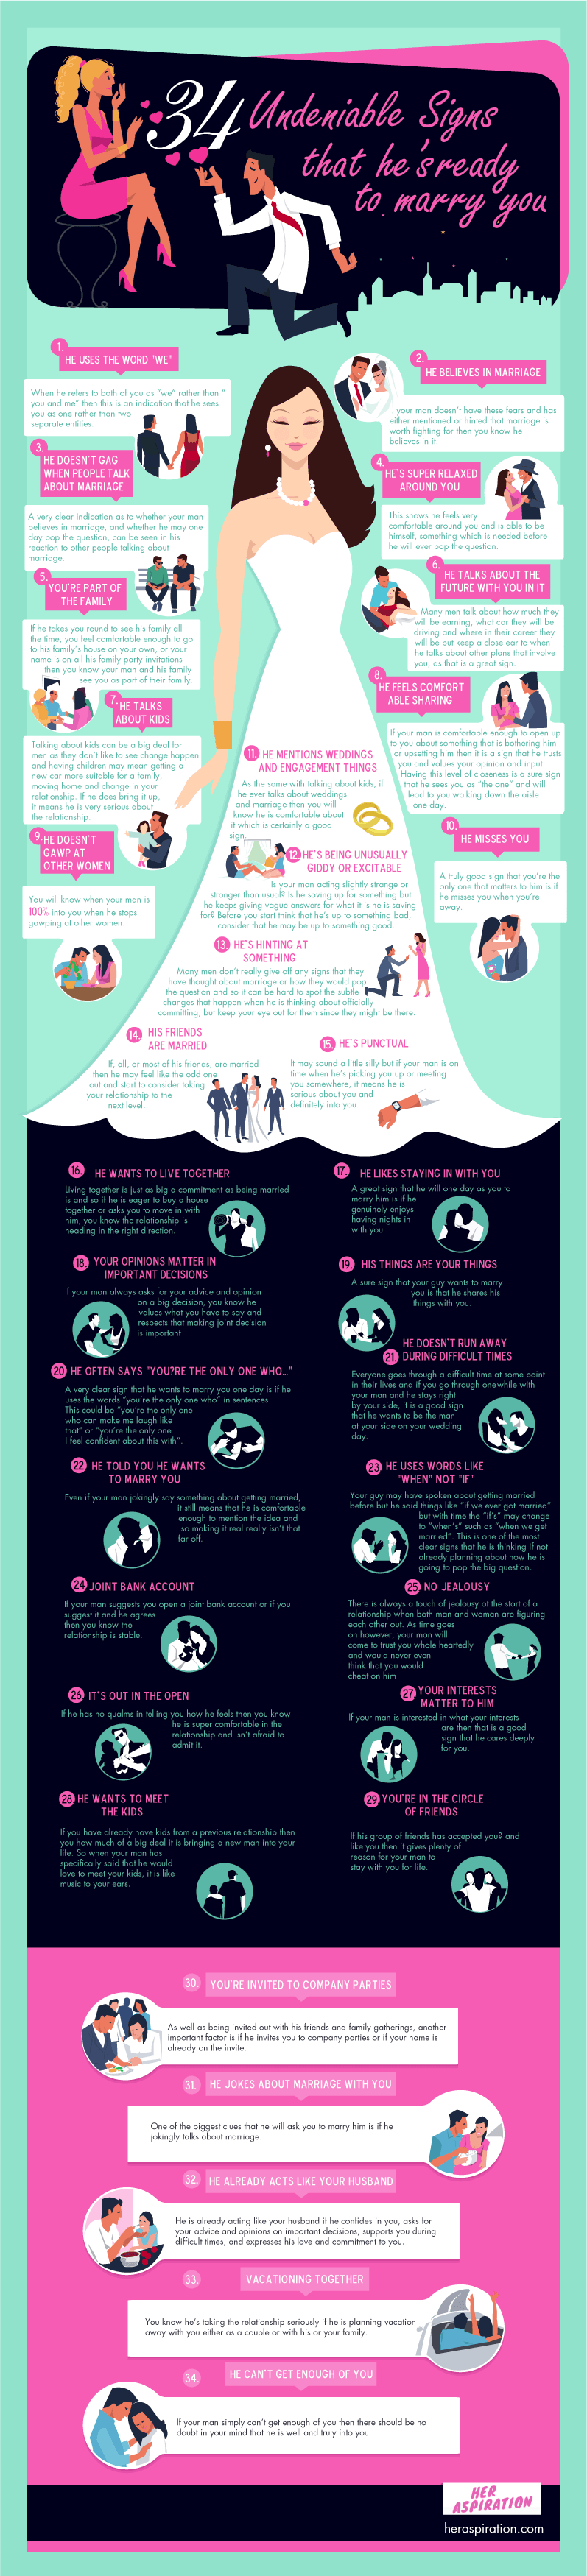 34 Signs a Man is Ready to Marry a Woman Infographic